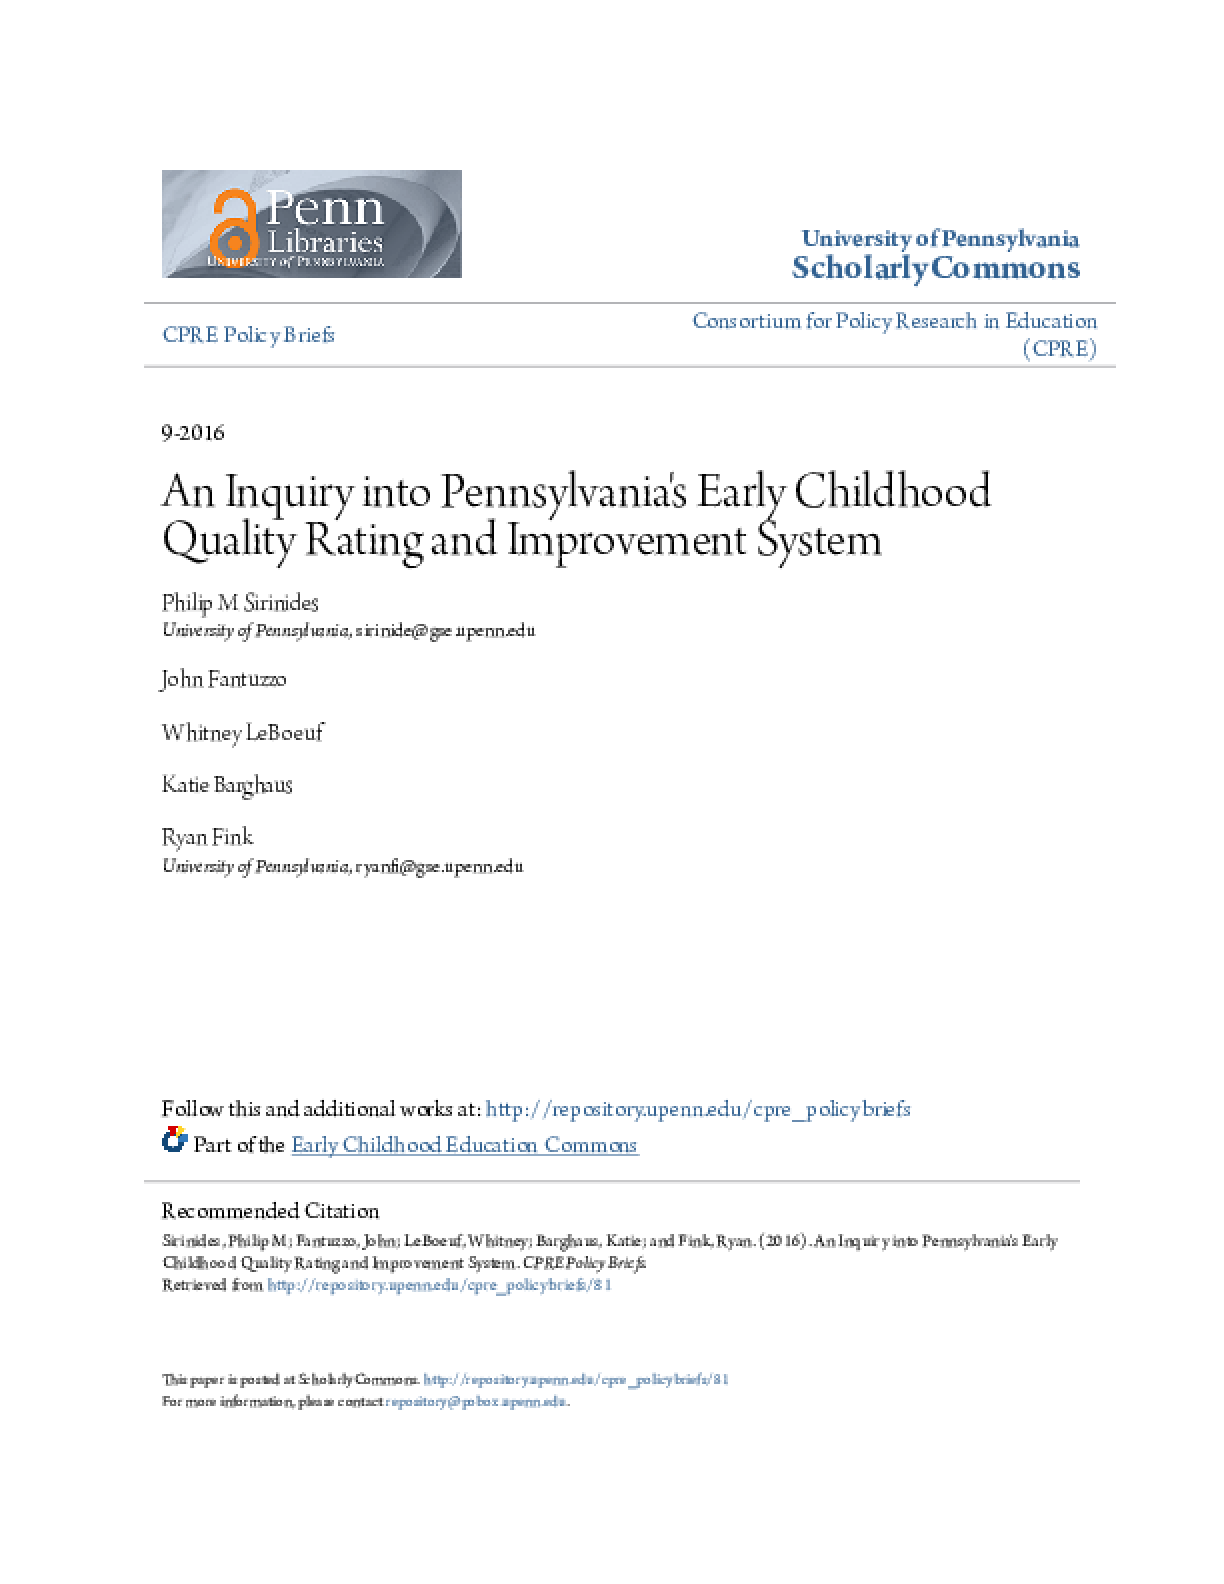 An Inquiry into Pennsylvania's Early Childhood Quality Rating and Improvement System